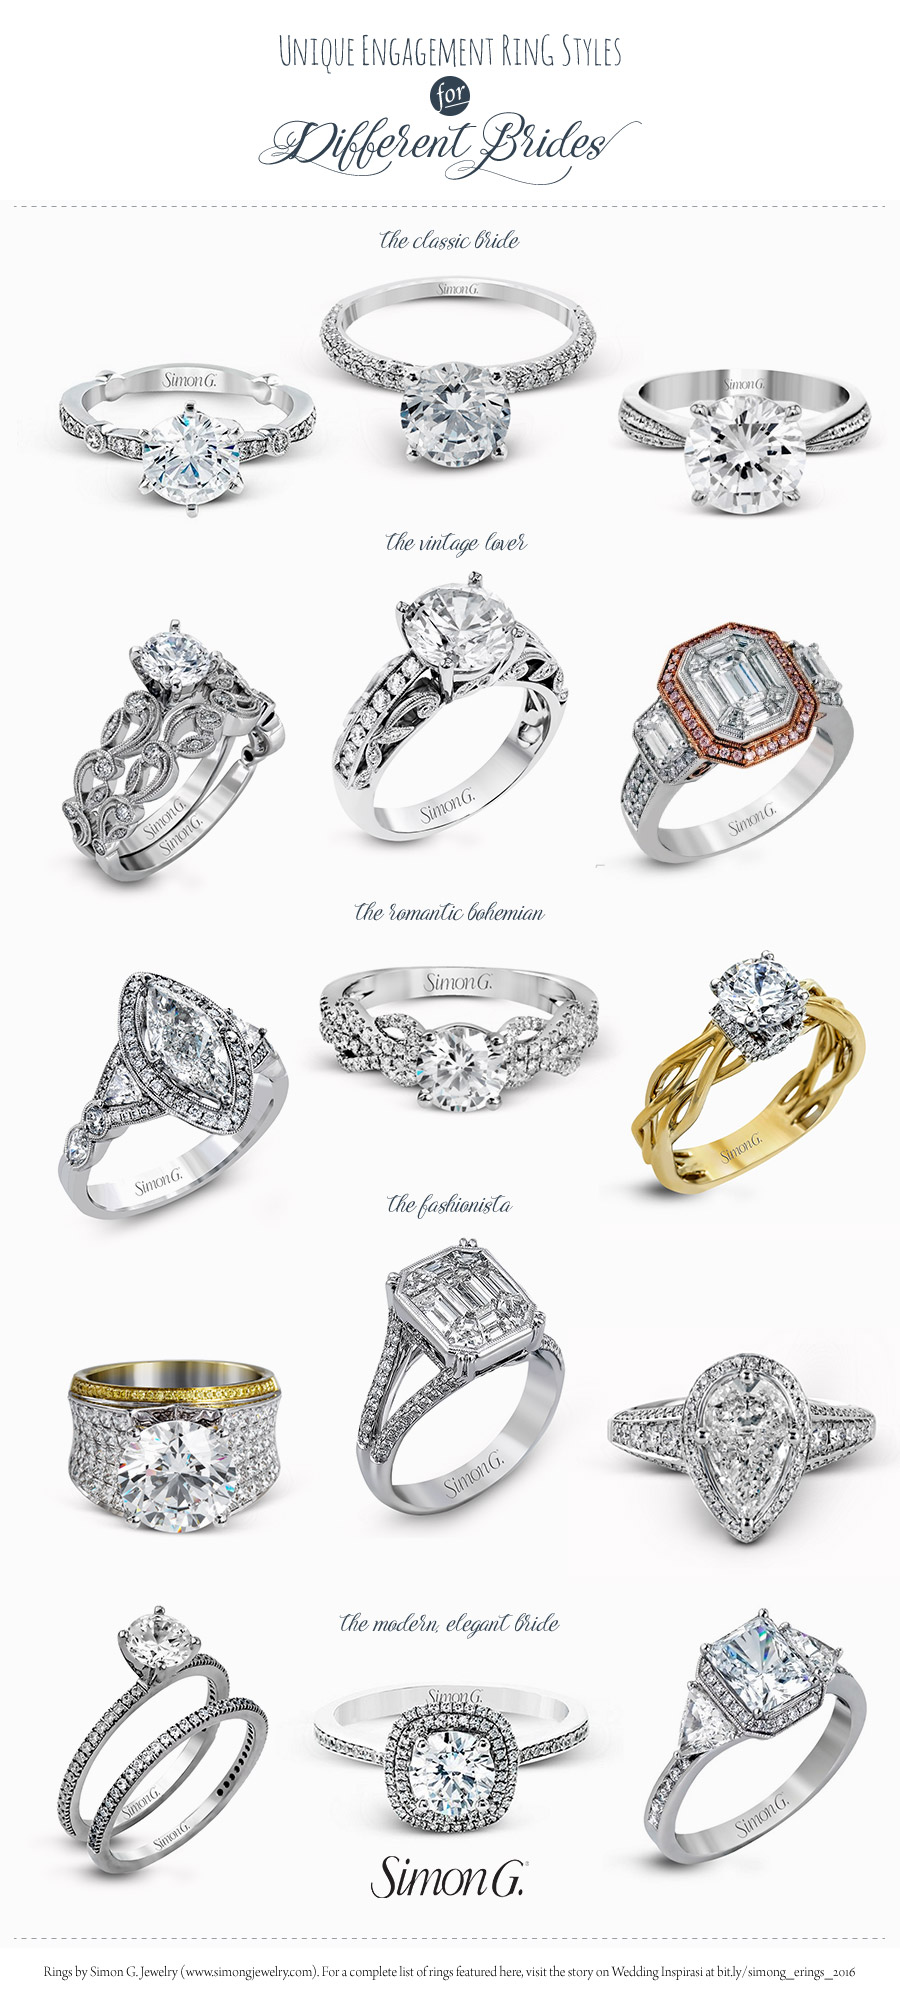 Simon G Engagement Ring Styles for Every Bride